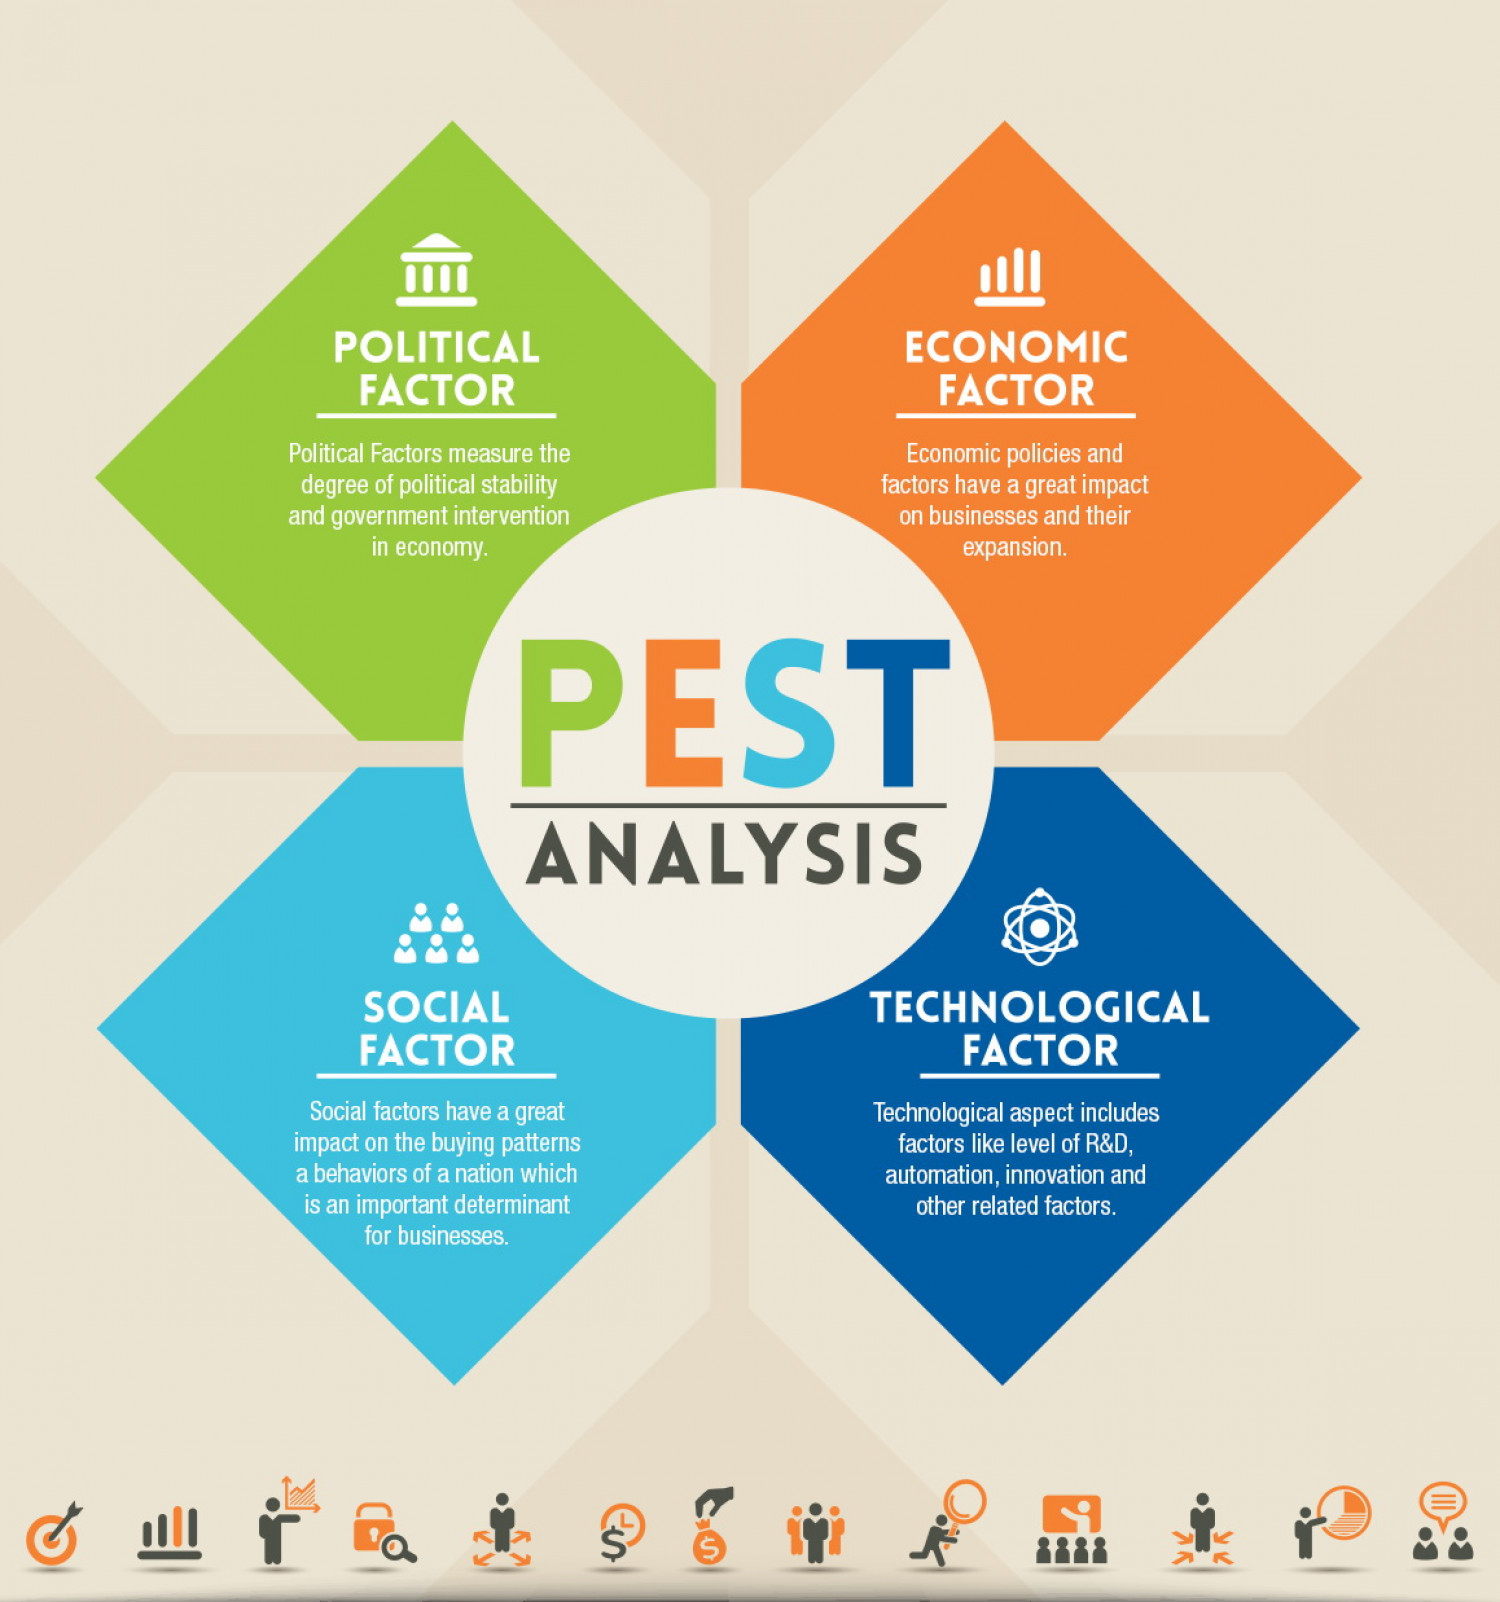 pestel and swot analysis of fair trade company This ford swot analysis reveals how a pioneering automobile company used its competitive advantages to become one of the most innovative automotive manufacturers in the world.